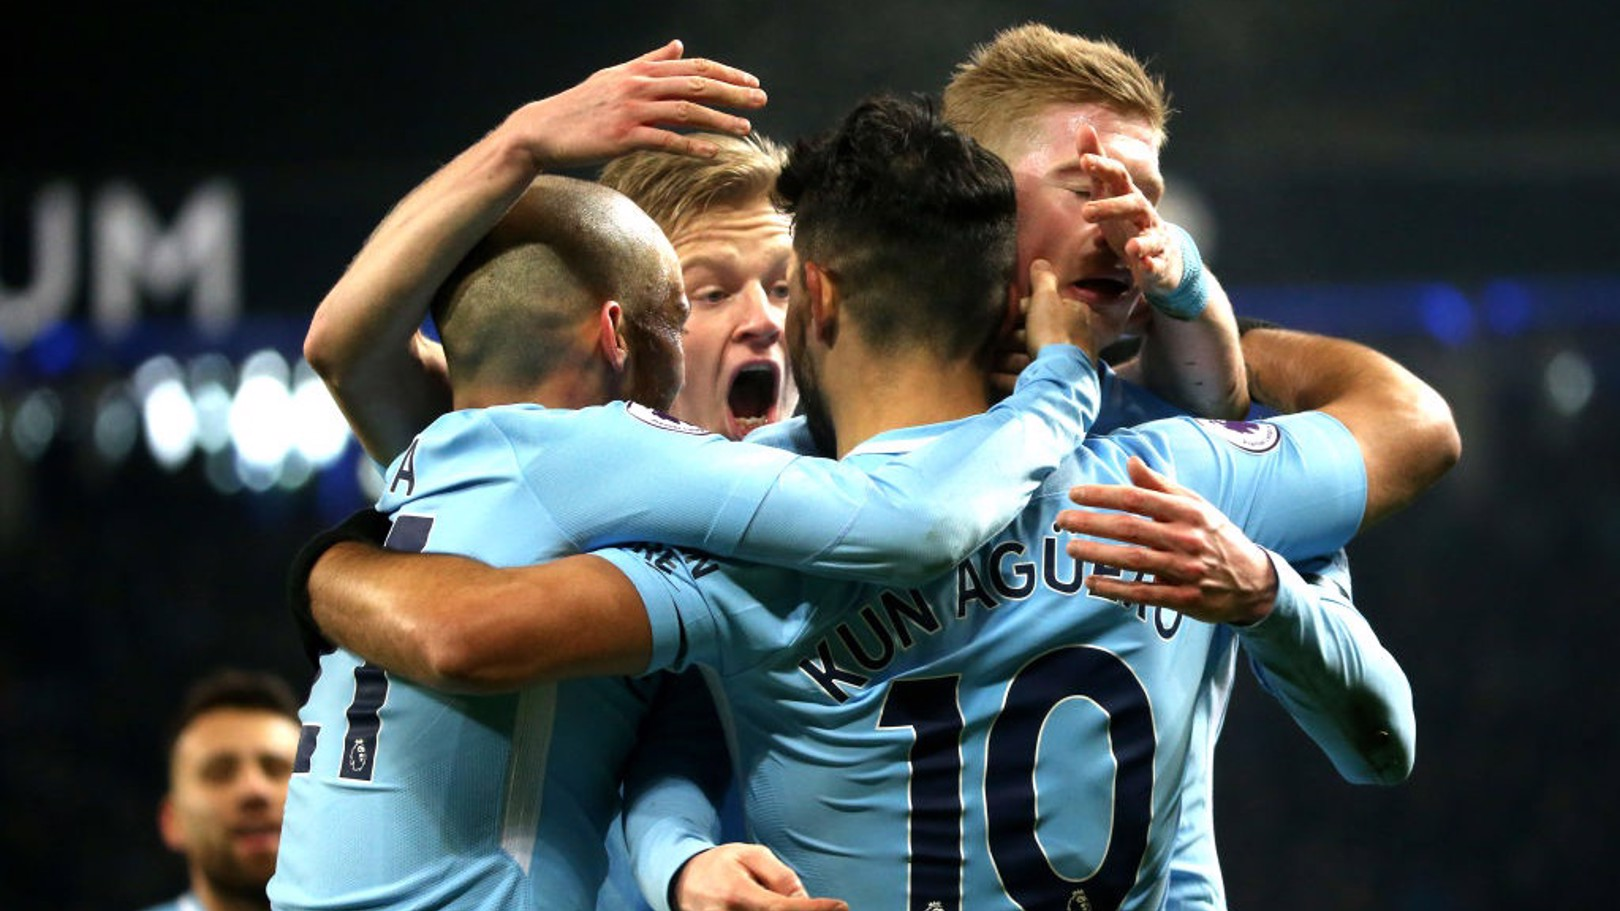 BREAKTHROUGH: City celebrate Sergio Agüero's opener, the Argentine's 12th Premier League goal against Newcastle.